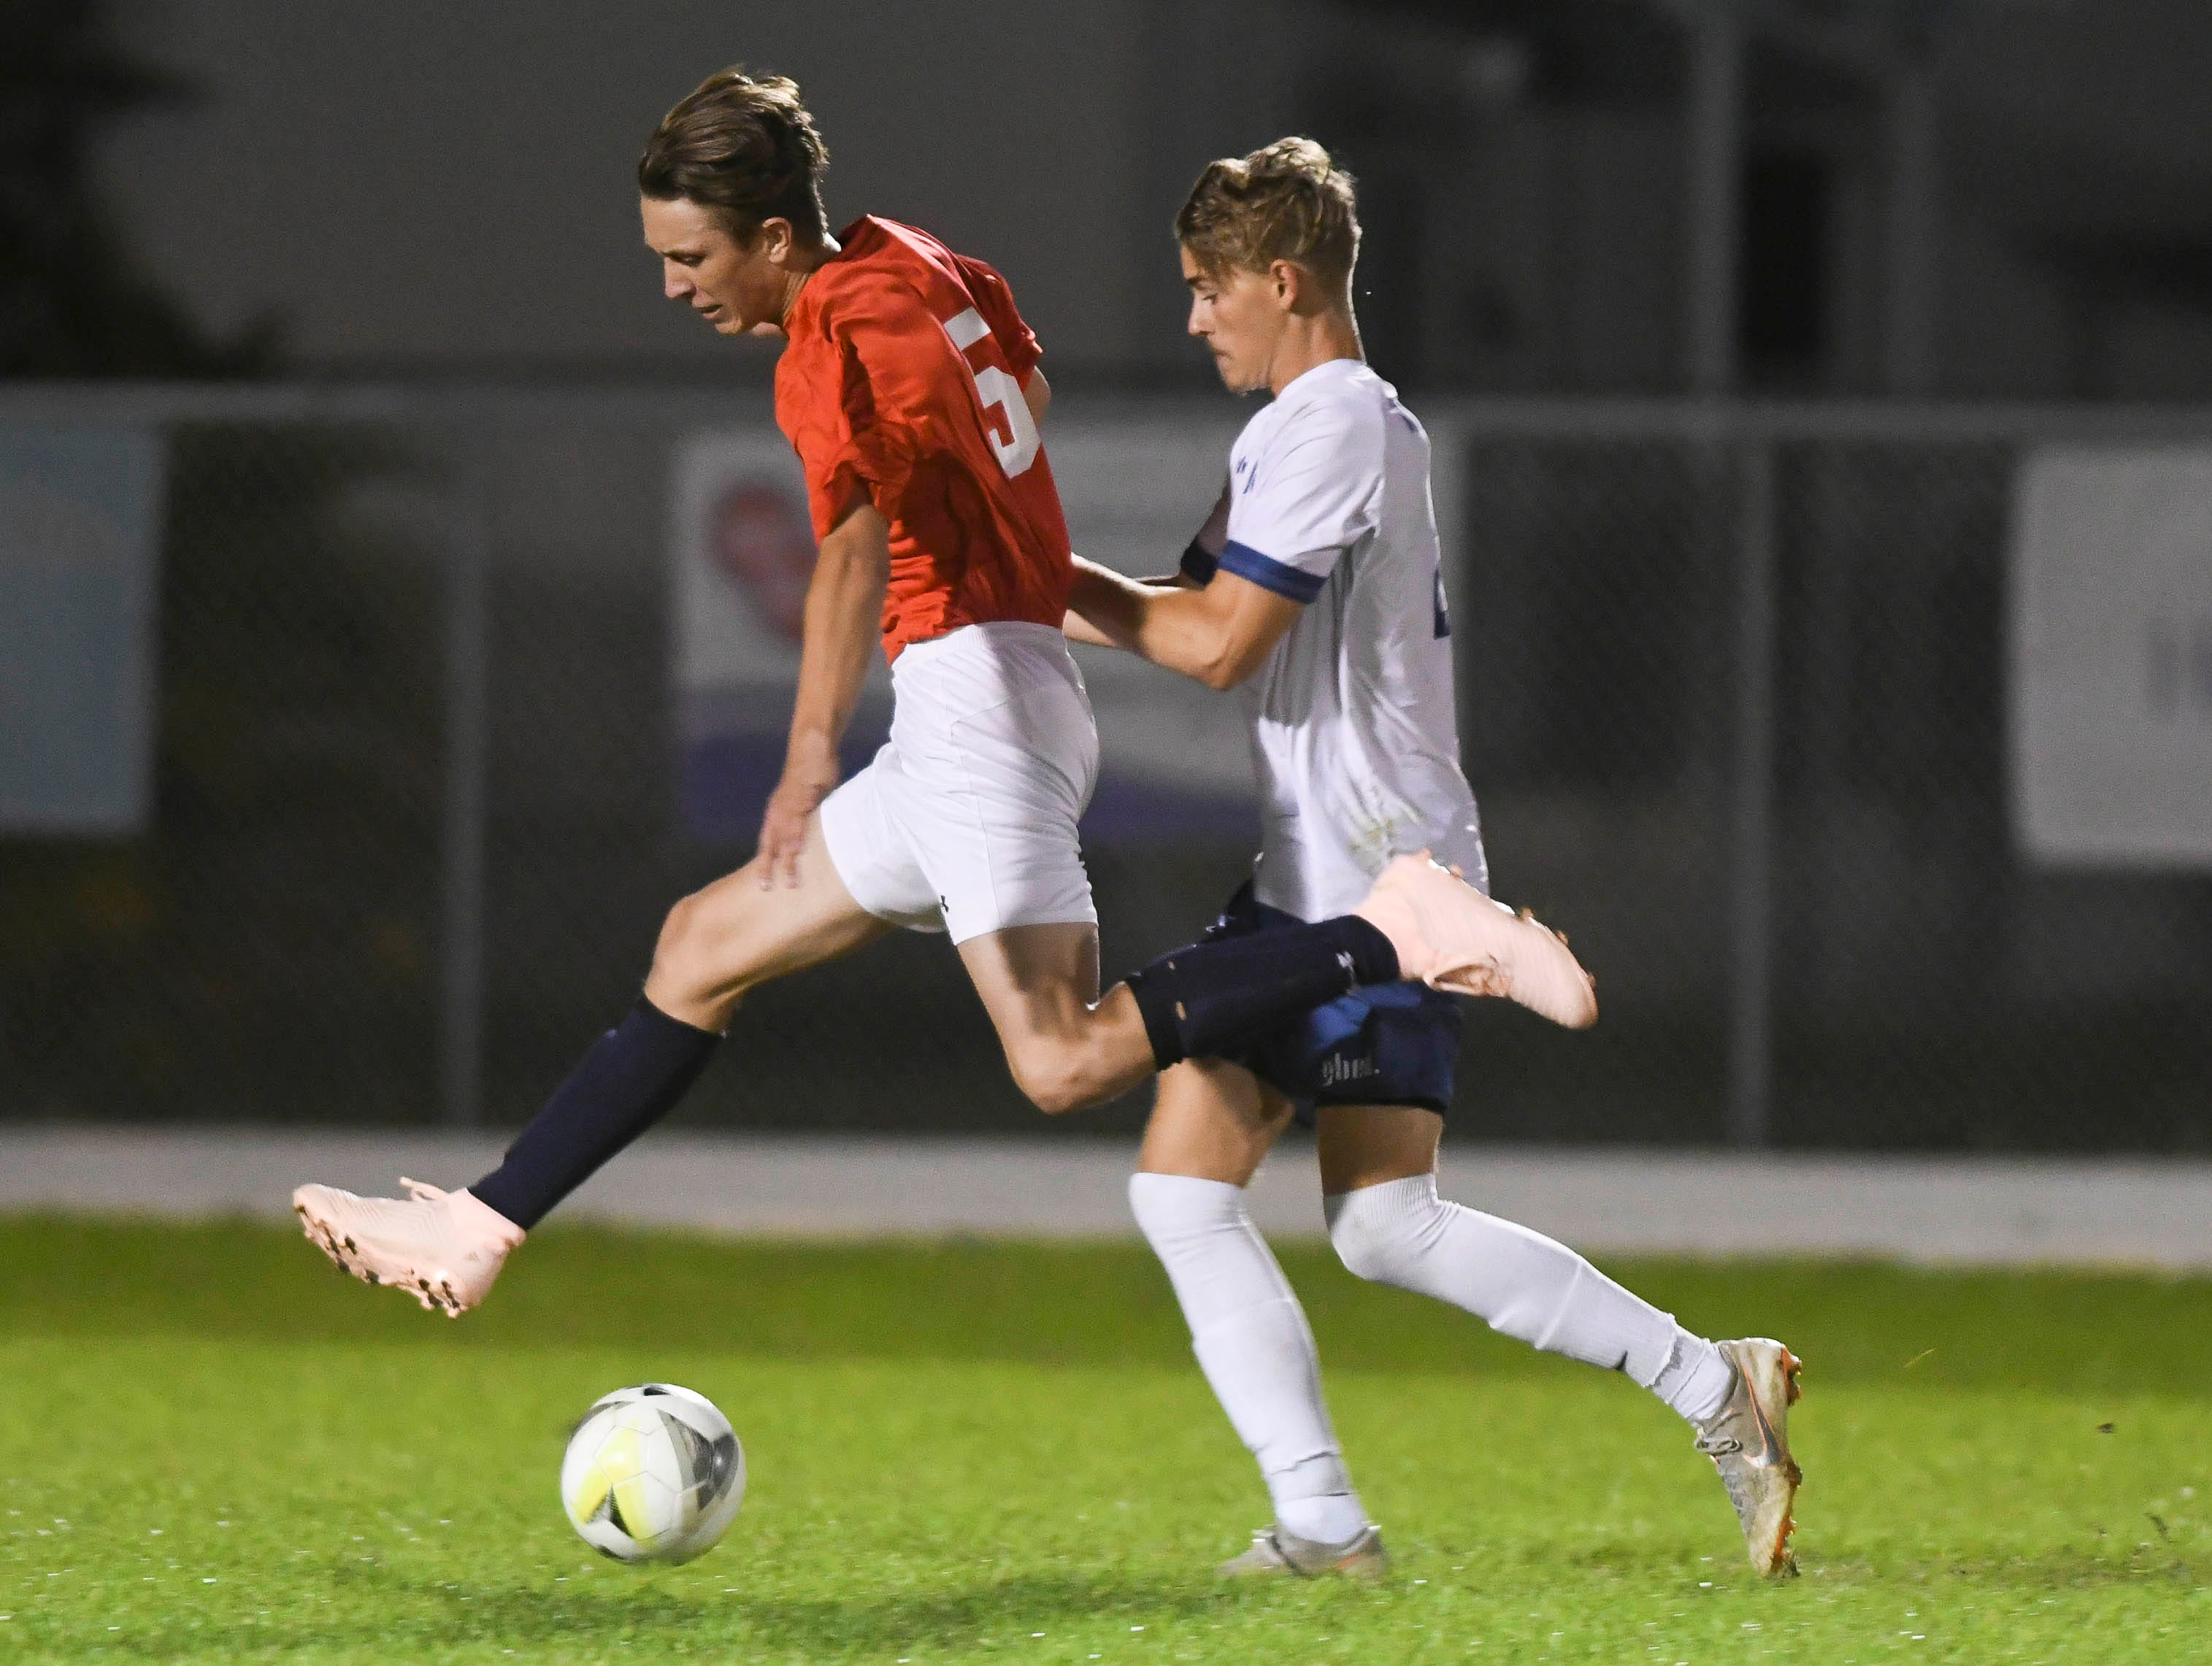 Cocoa Beach's Eric Anderson (5) and Ian Leighton of West Shore battle for the ball during Wednesday's game in Cocoa Beach